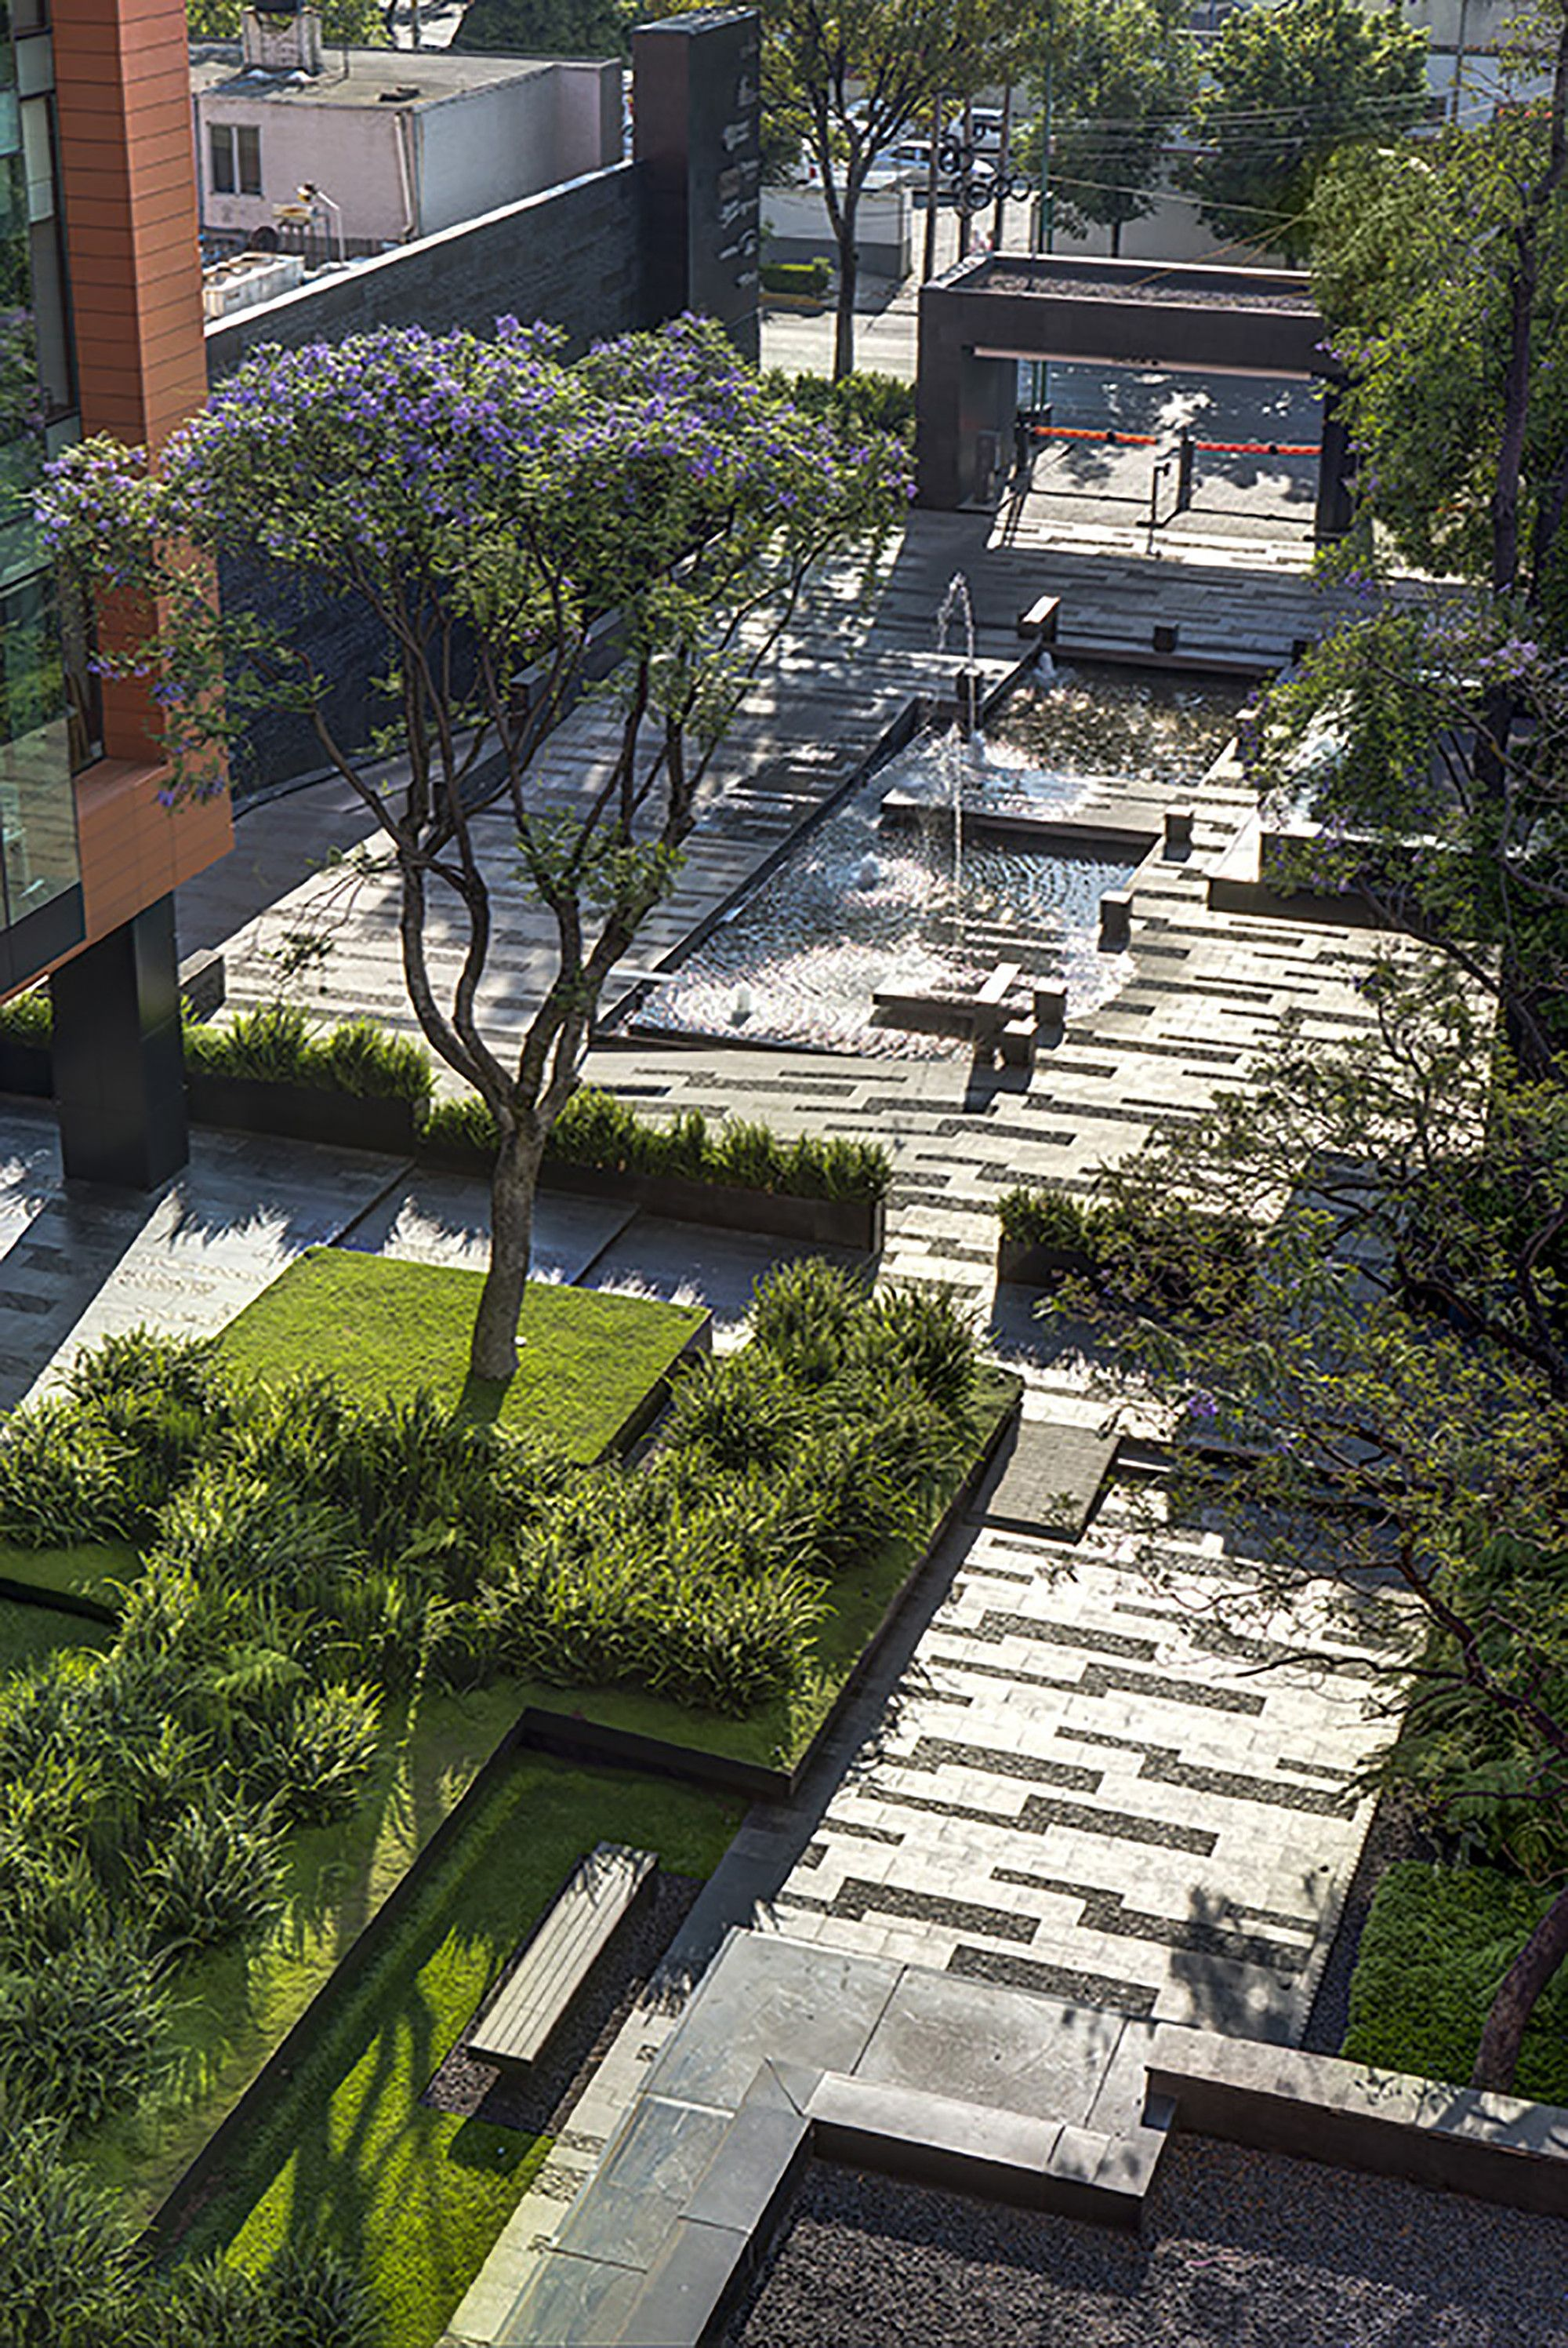 Galeria de paisagismo no campus corporativo coyoac n dlc for Green landscape design